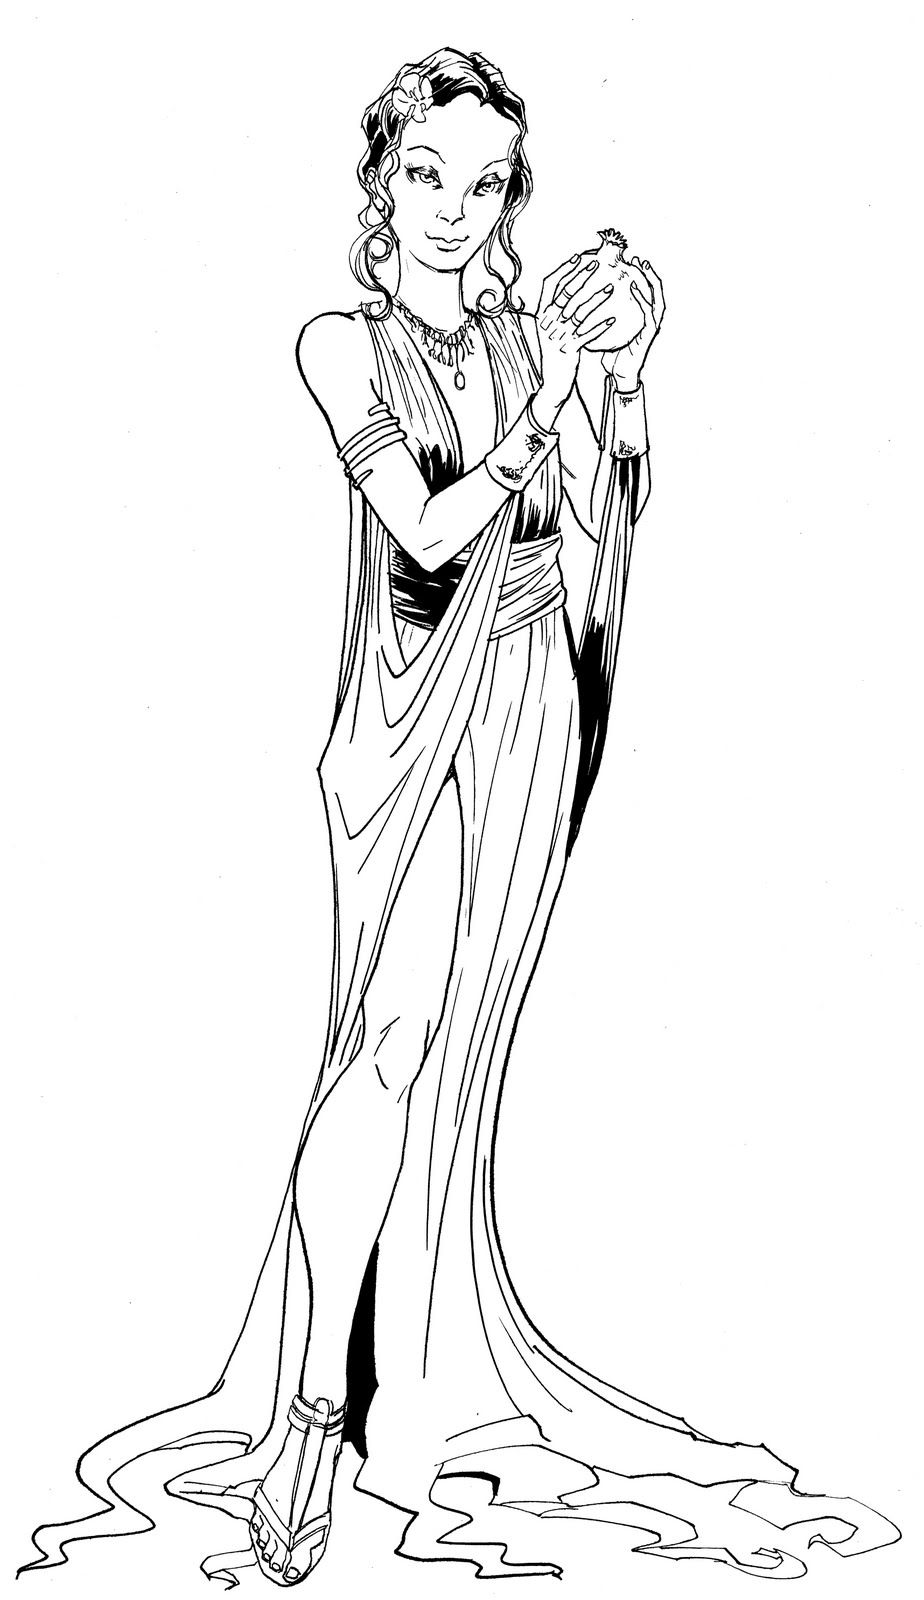 Aphrodite Coloring Pages Crokky Coloring Pages Coloring Pages Ancient Greece Persephone